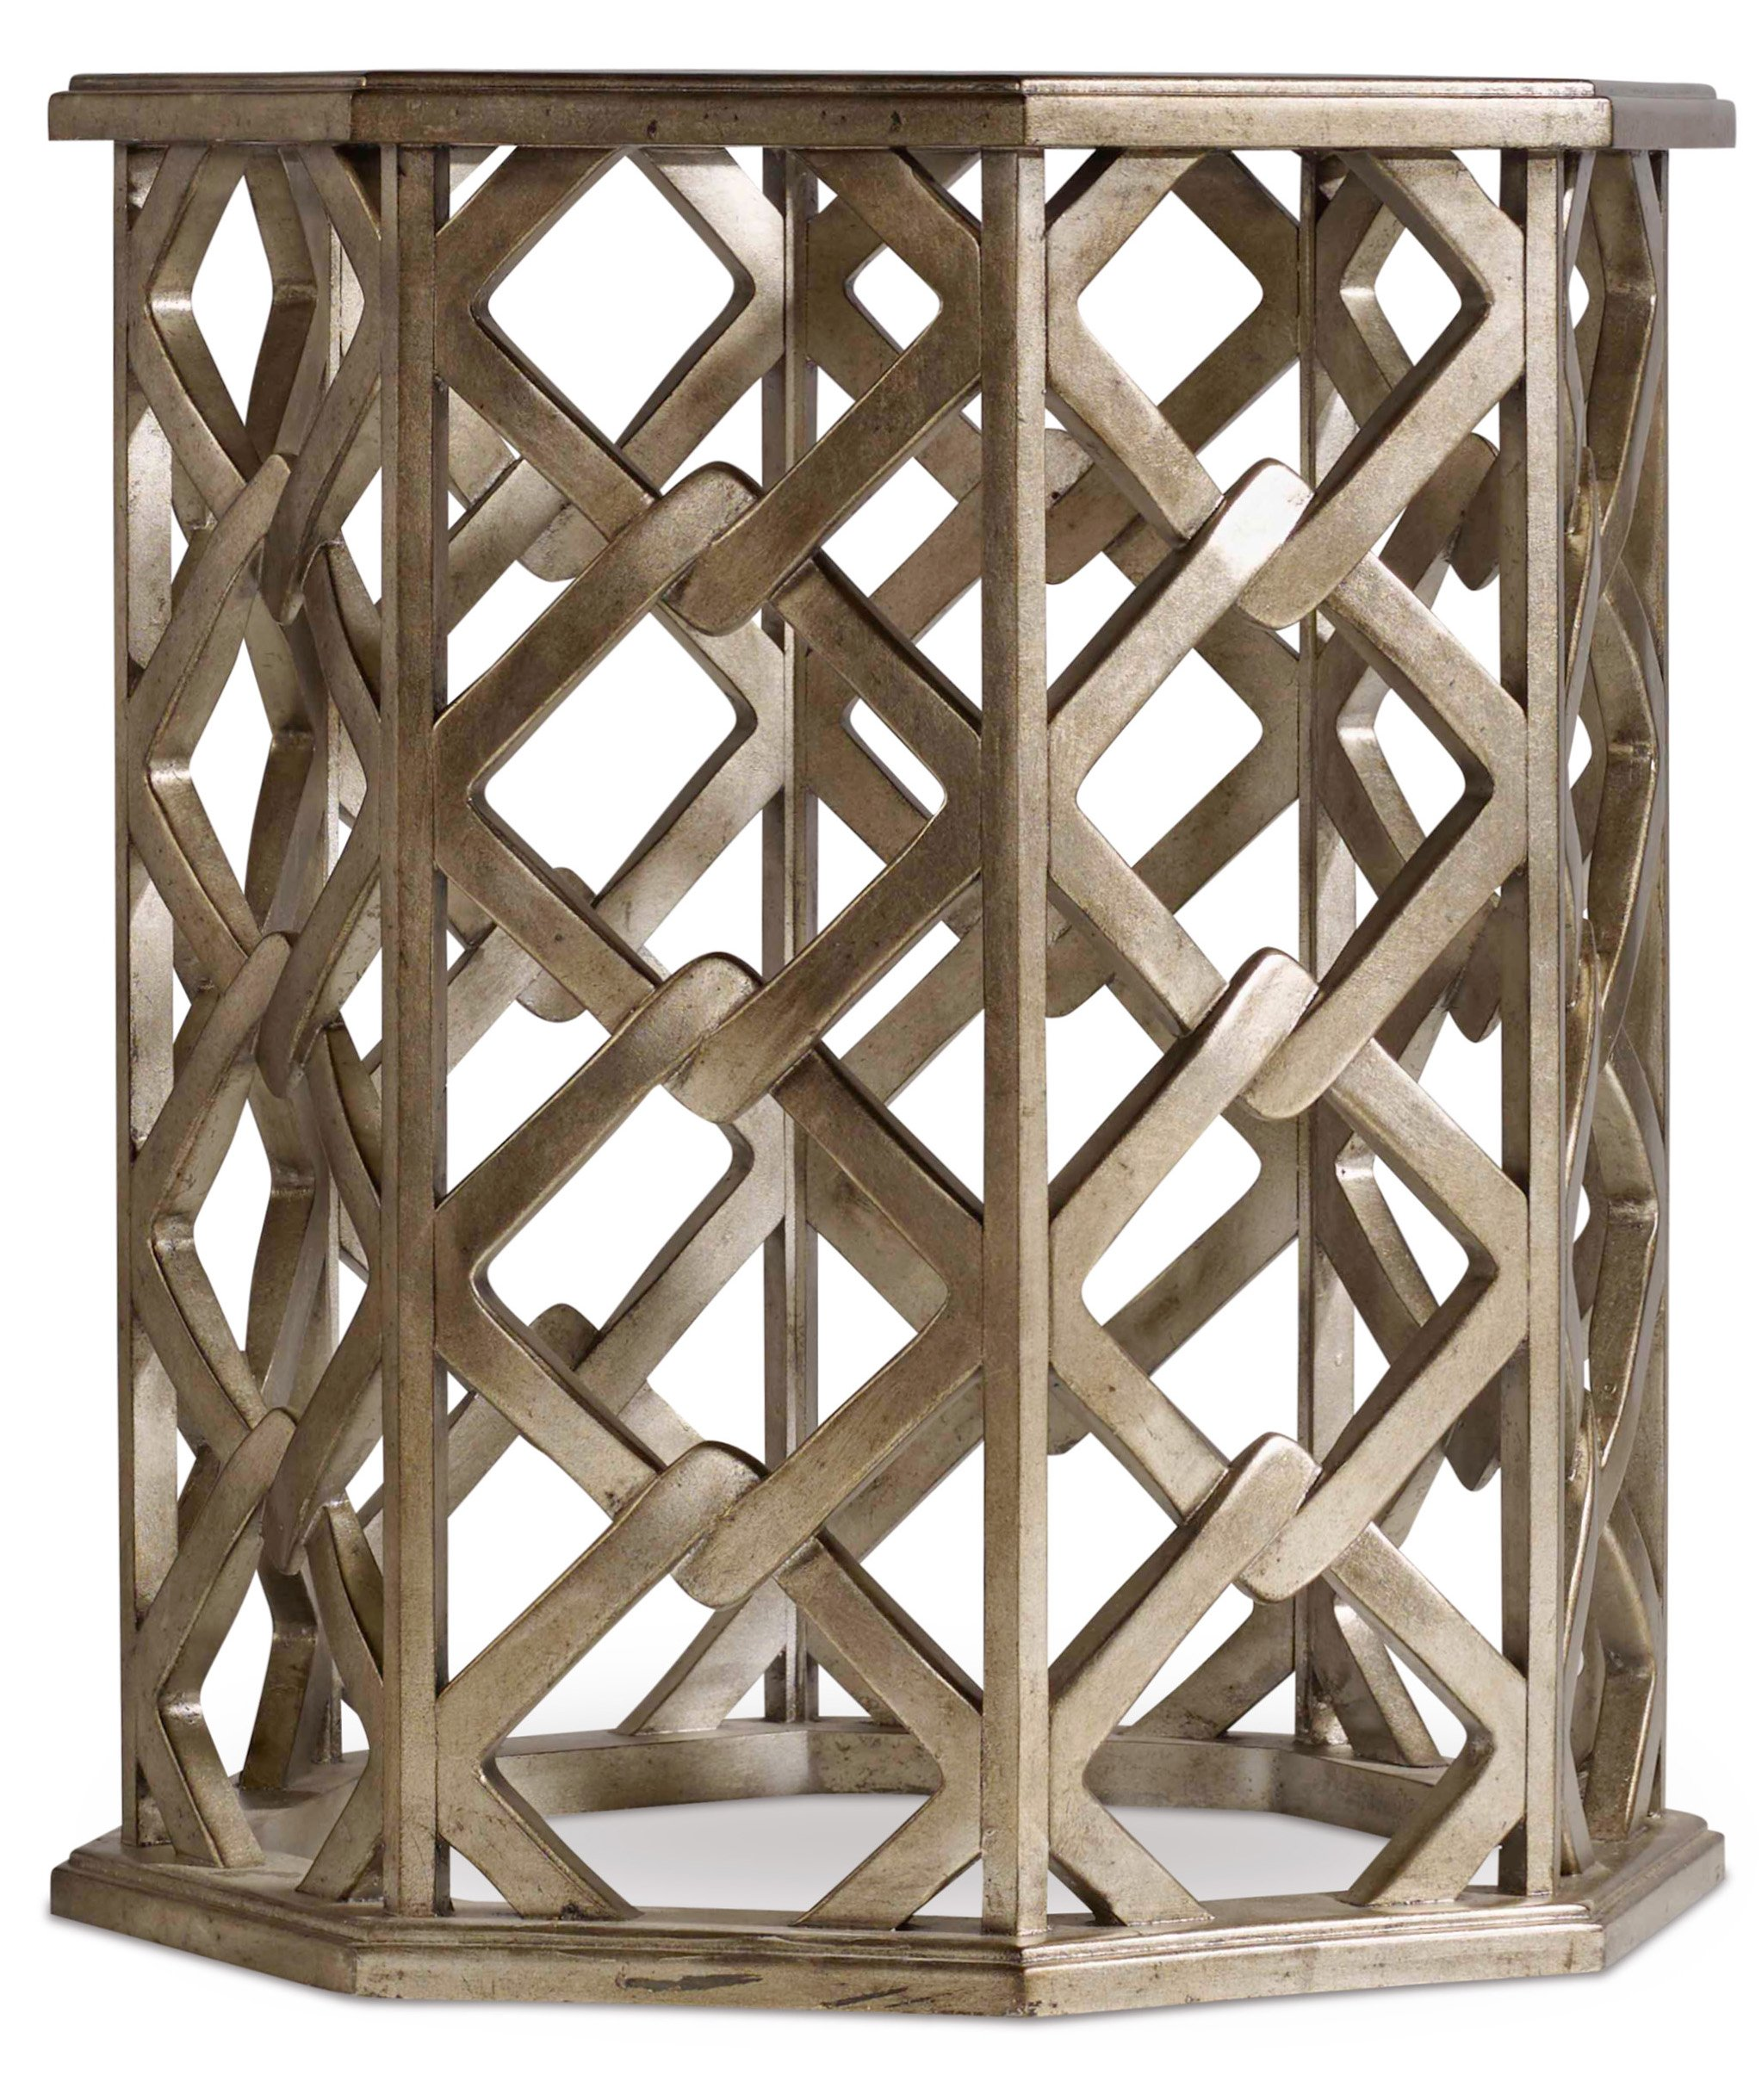 Harris & Terry Taylor End Table, Silver - Glass Top Interlocking base design Transitional Styling - living-room-furniture, living-room, end-tables - 91lsEkzT98L -